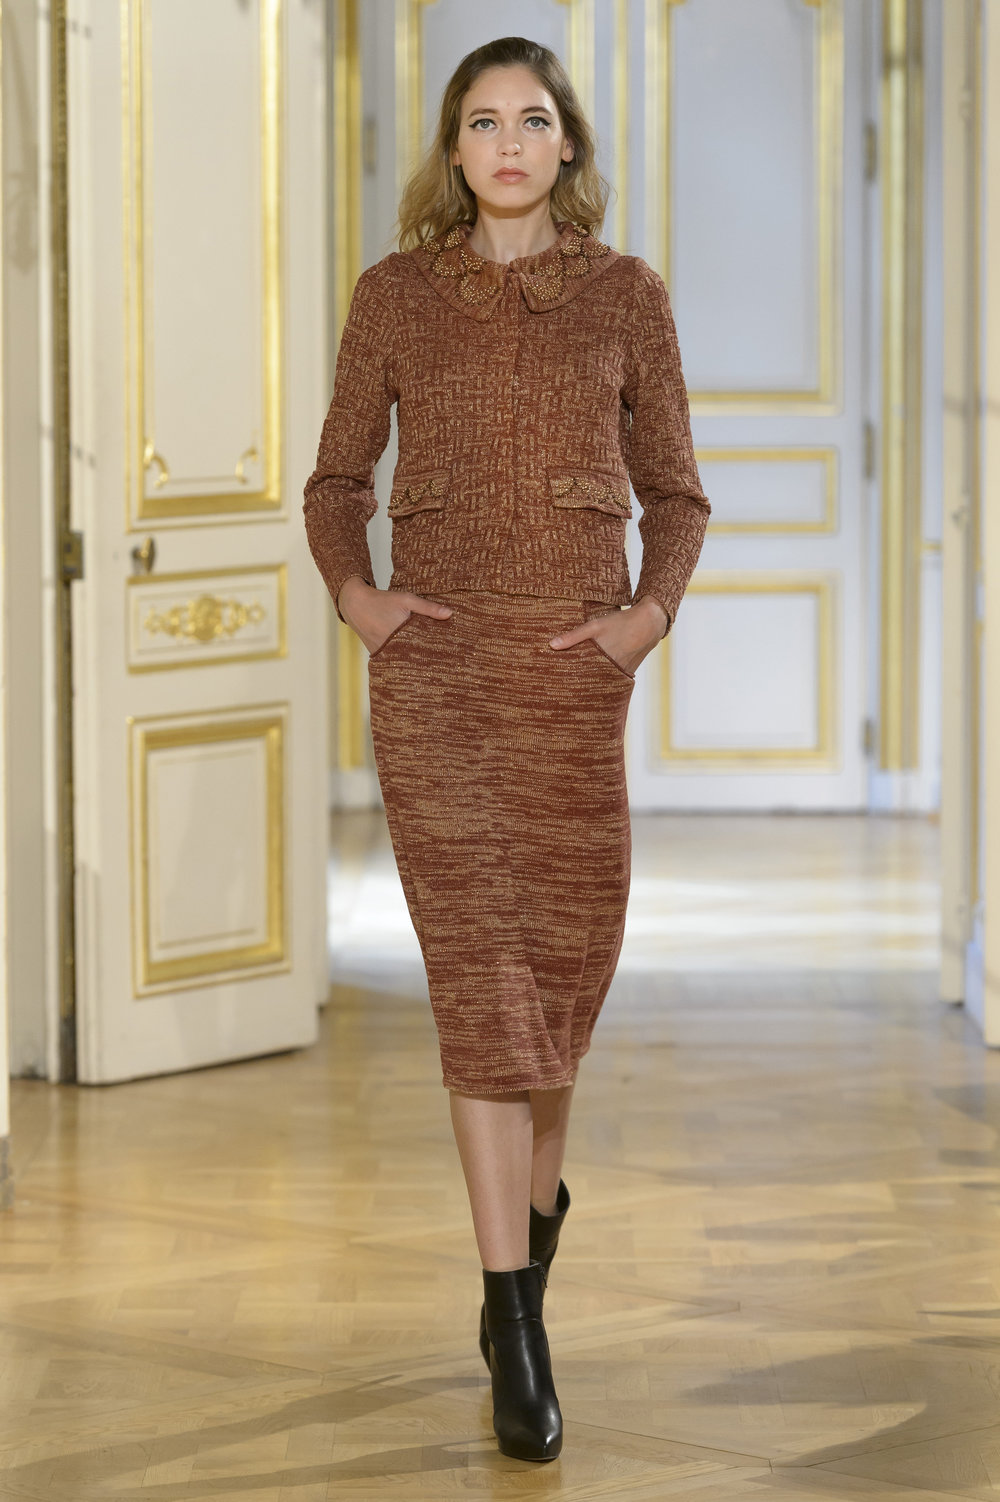 MARIA ARISTIDOU photos defile : fashion show %22Serendipity%22 couture collection automne hiver : fall winter 2018 2019 PFW - © Imaxtree 14.jpg